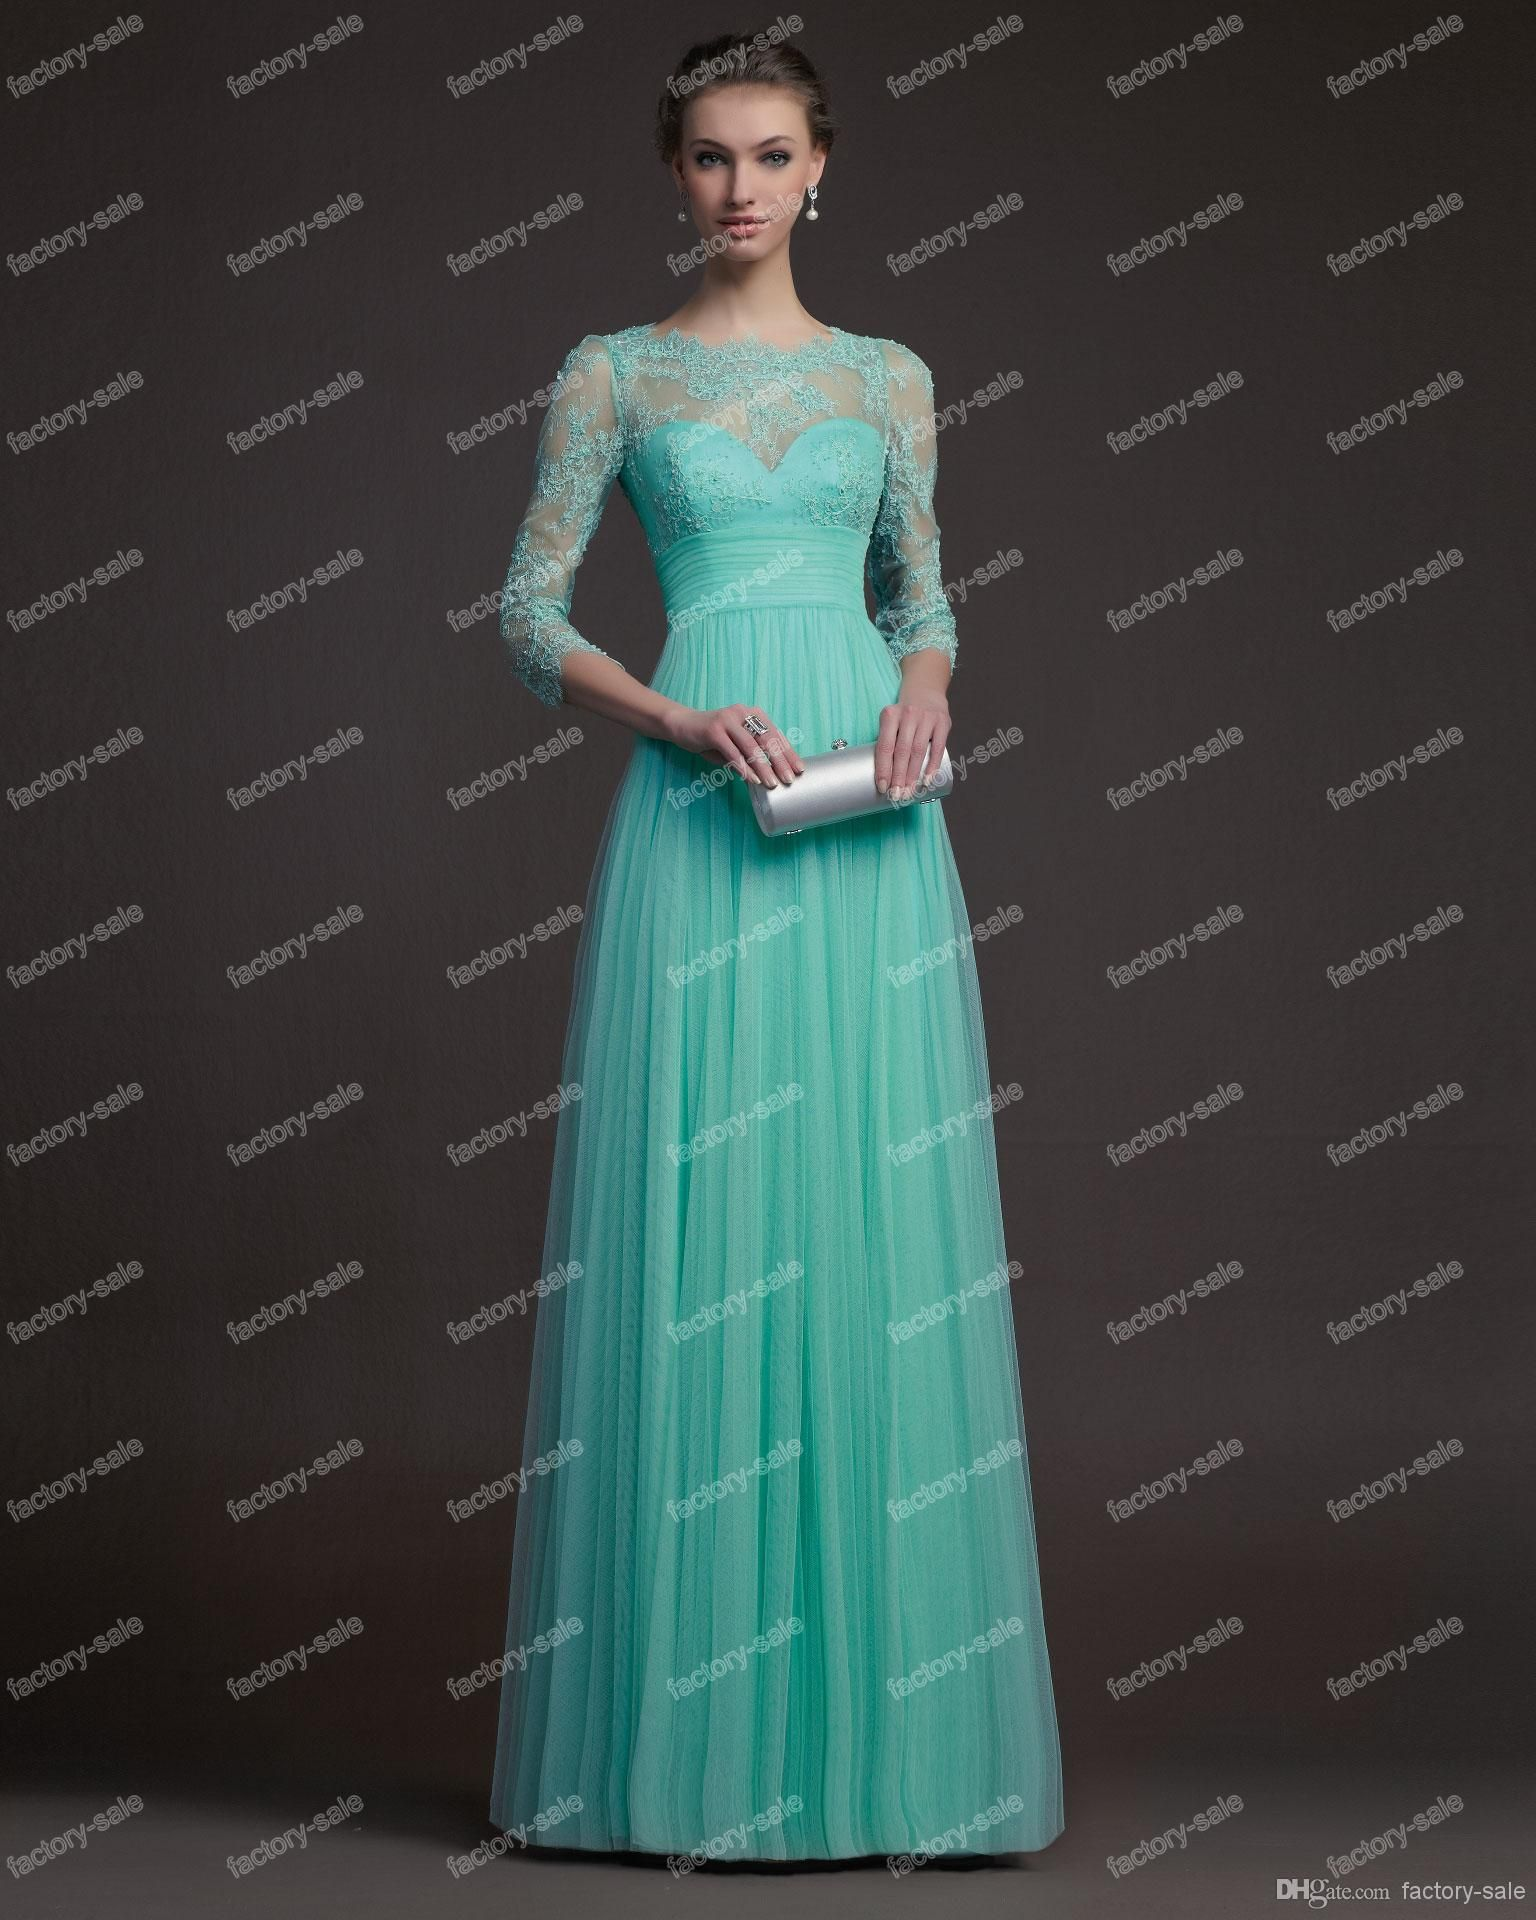 Wholesale Evening Gowns - Buy 2014 New Arrival Prom Dresses Modest ...